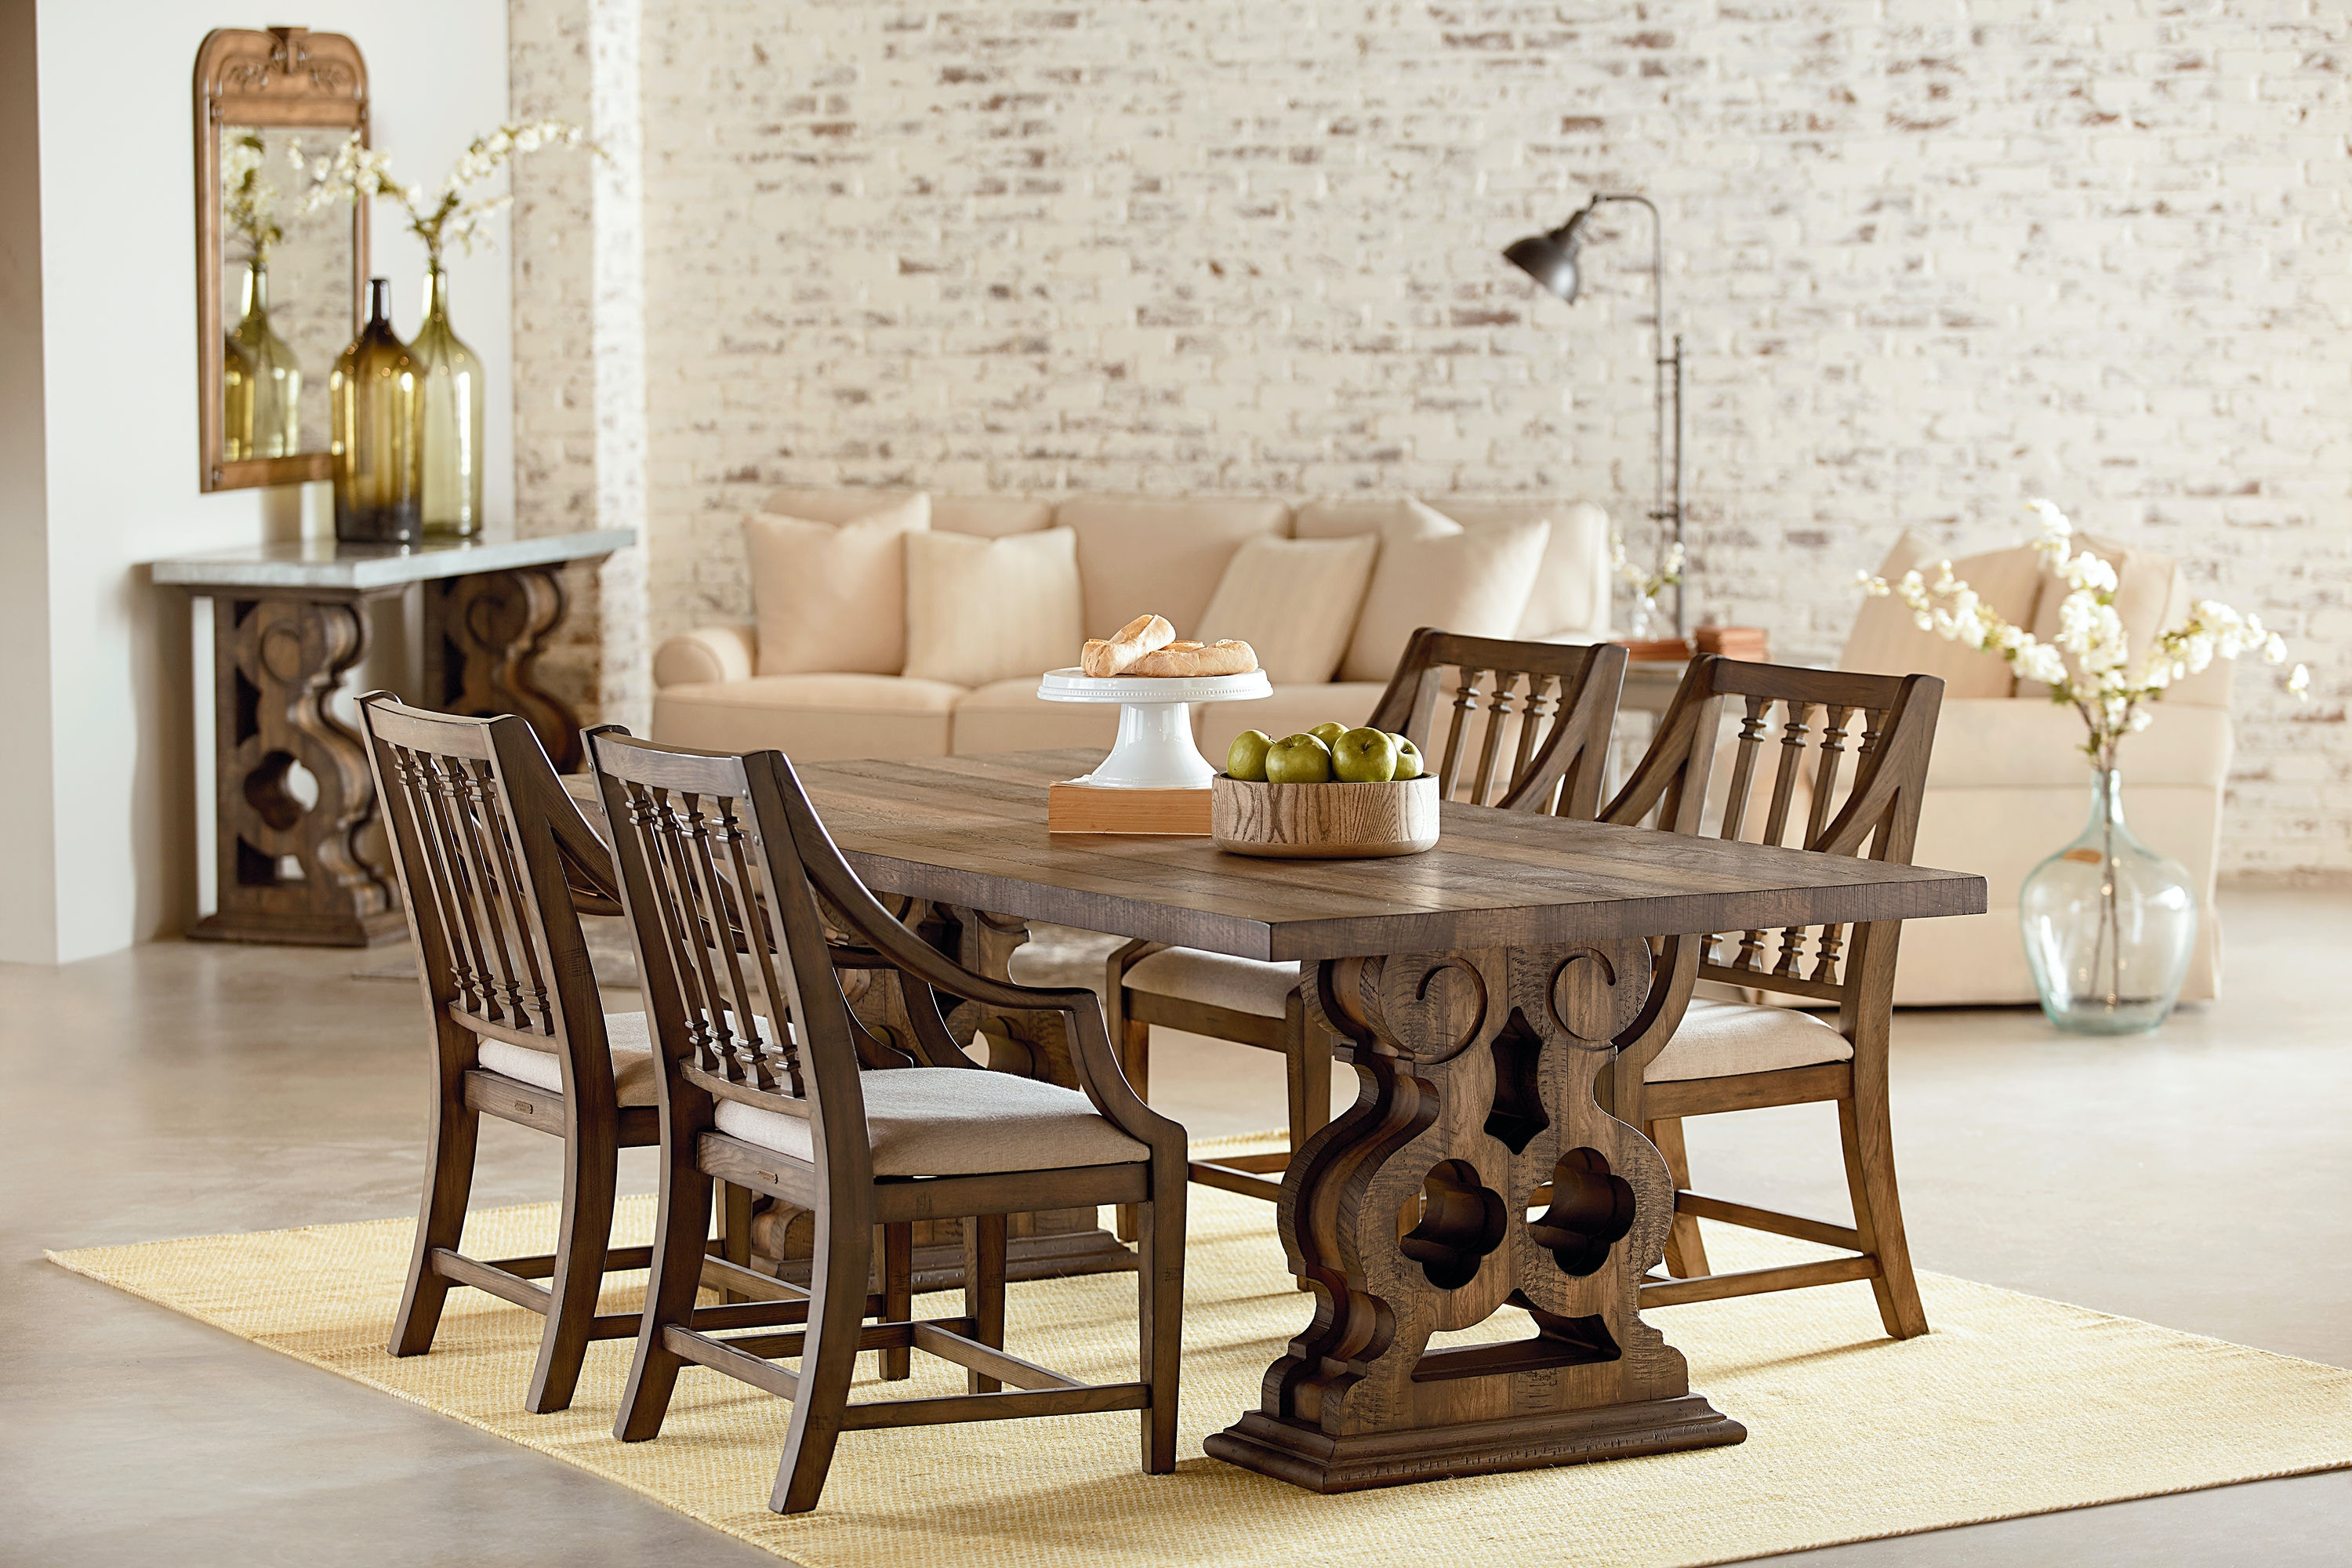 Amazing Magnolia Home   Double Pedestal Hall Table ST:463623